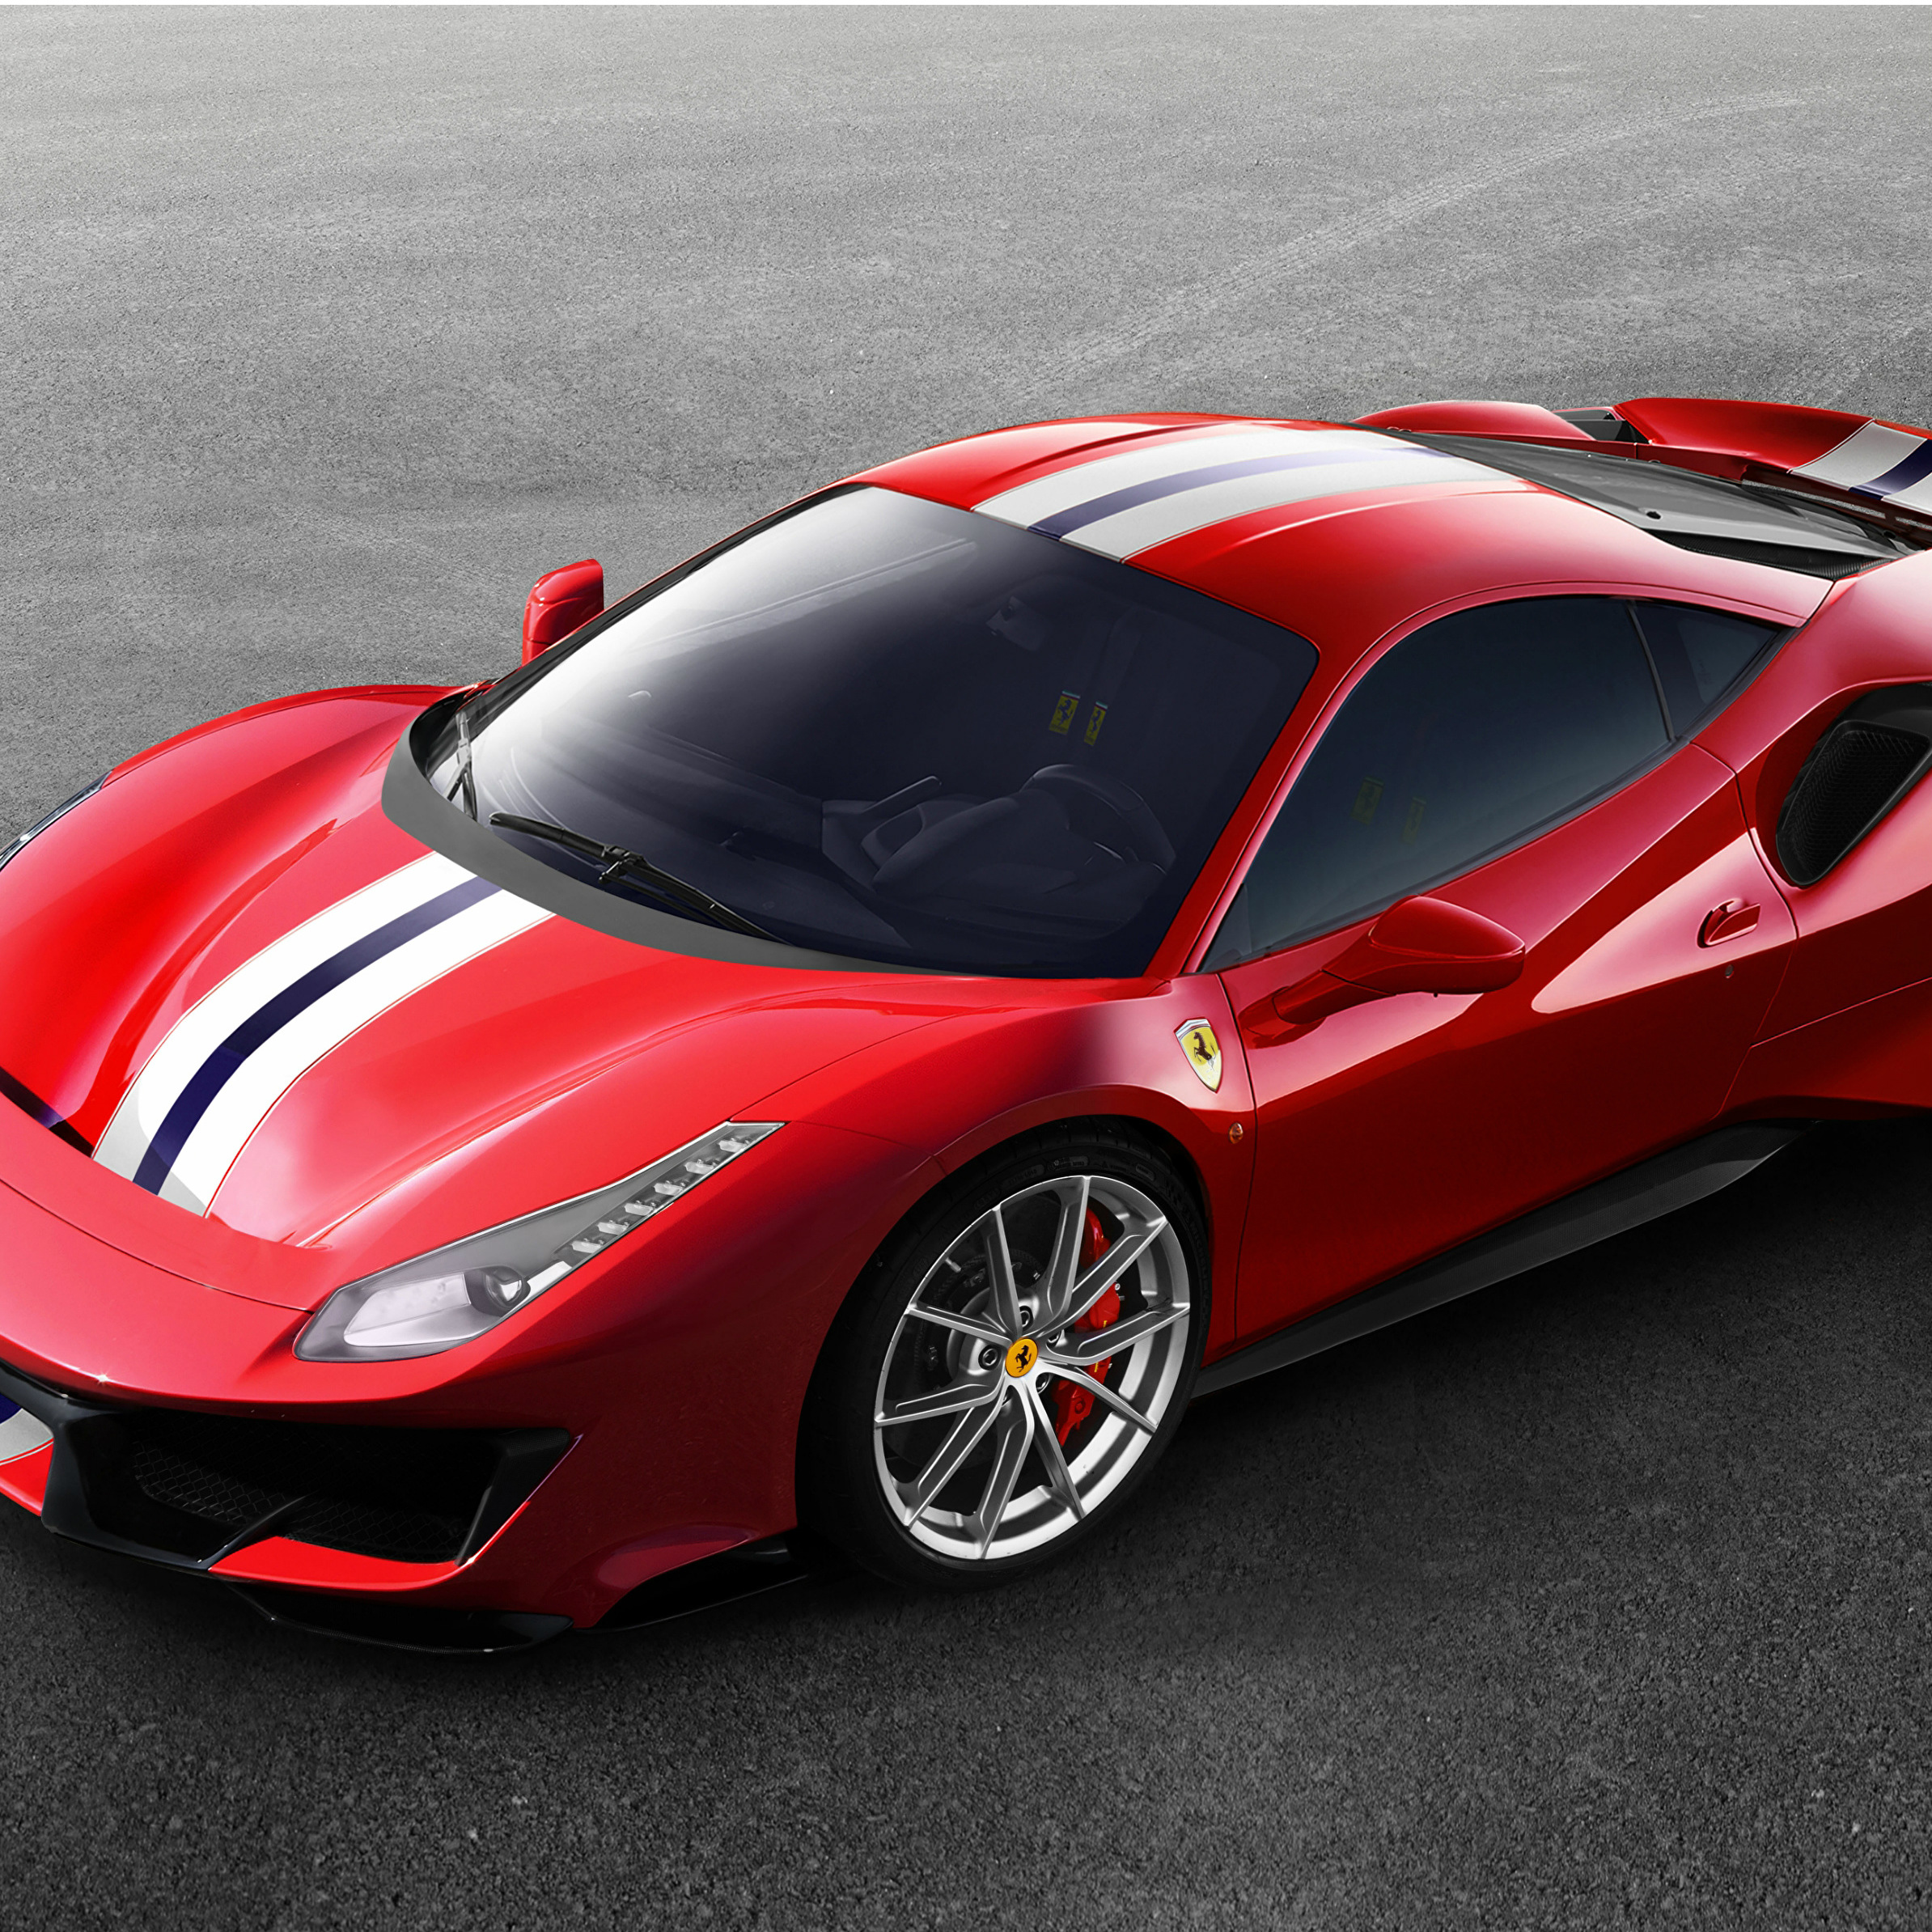 Ferrari F8 Tributo Imagined As A Spider: Ferrari 2019 Models: Complete Lineup, Prices, Specs & Reviews